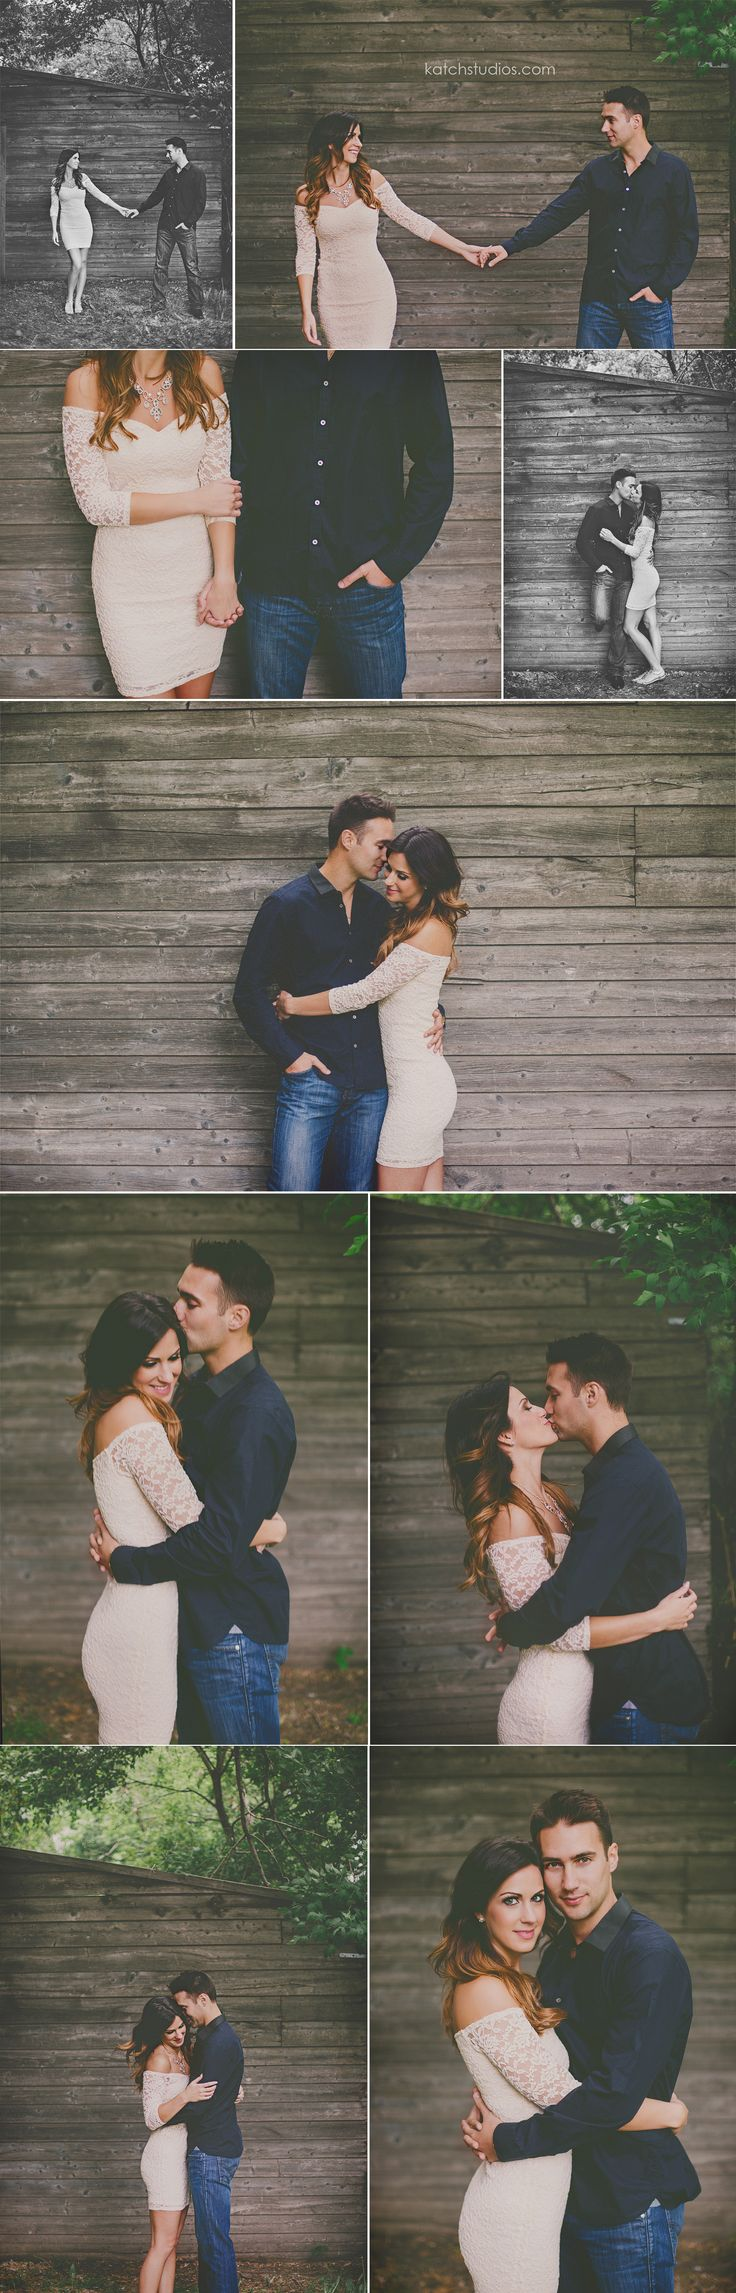 An engagement session I actually like.